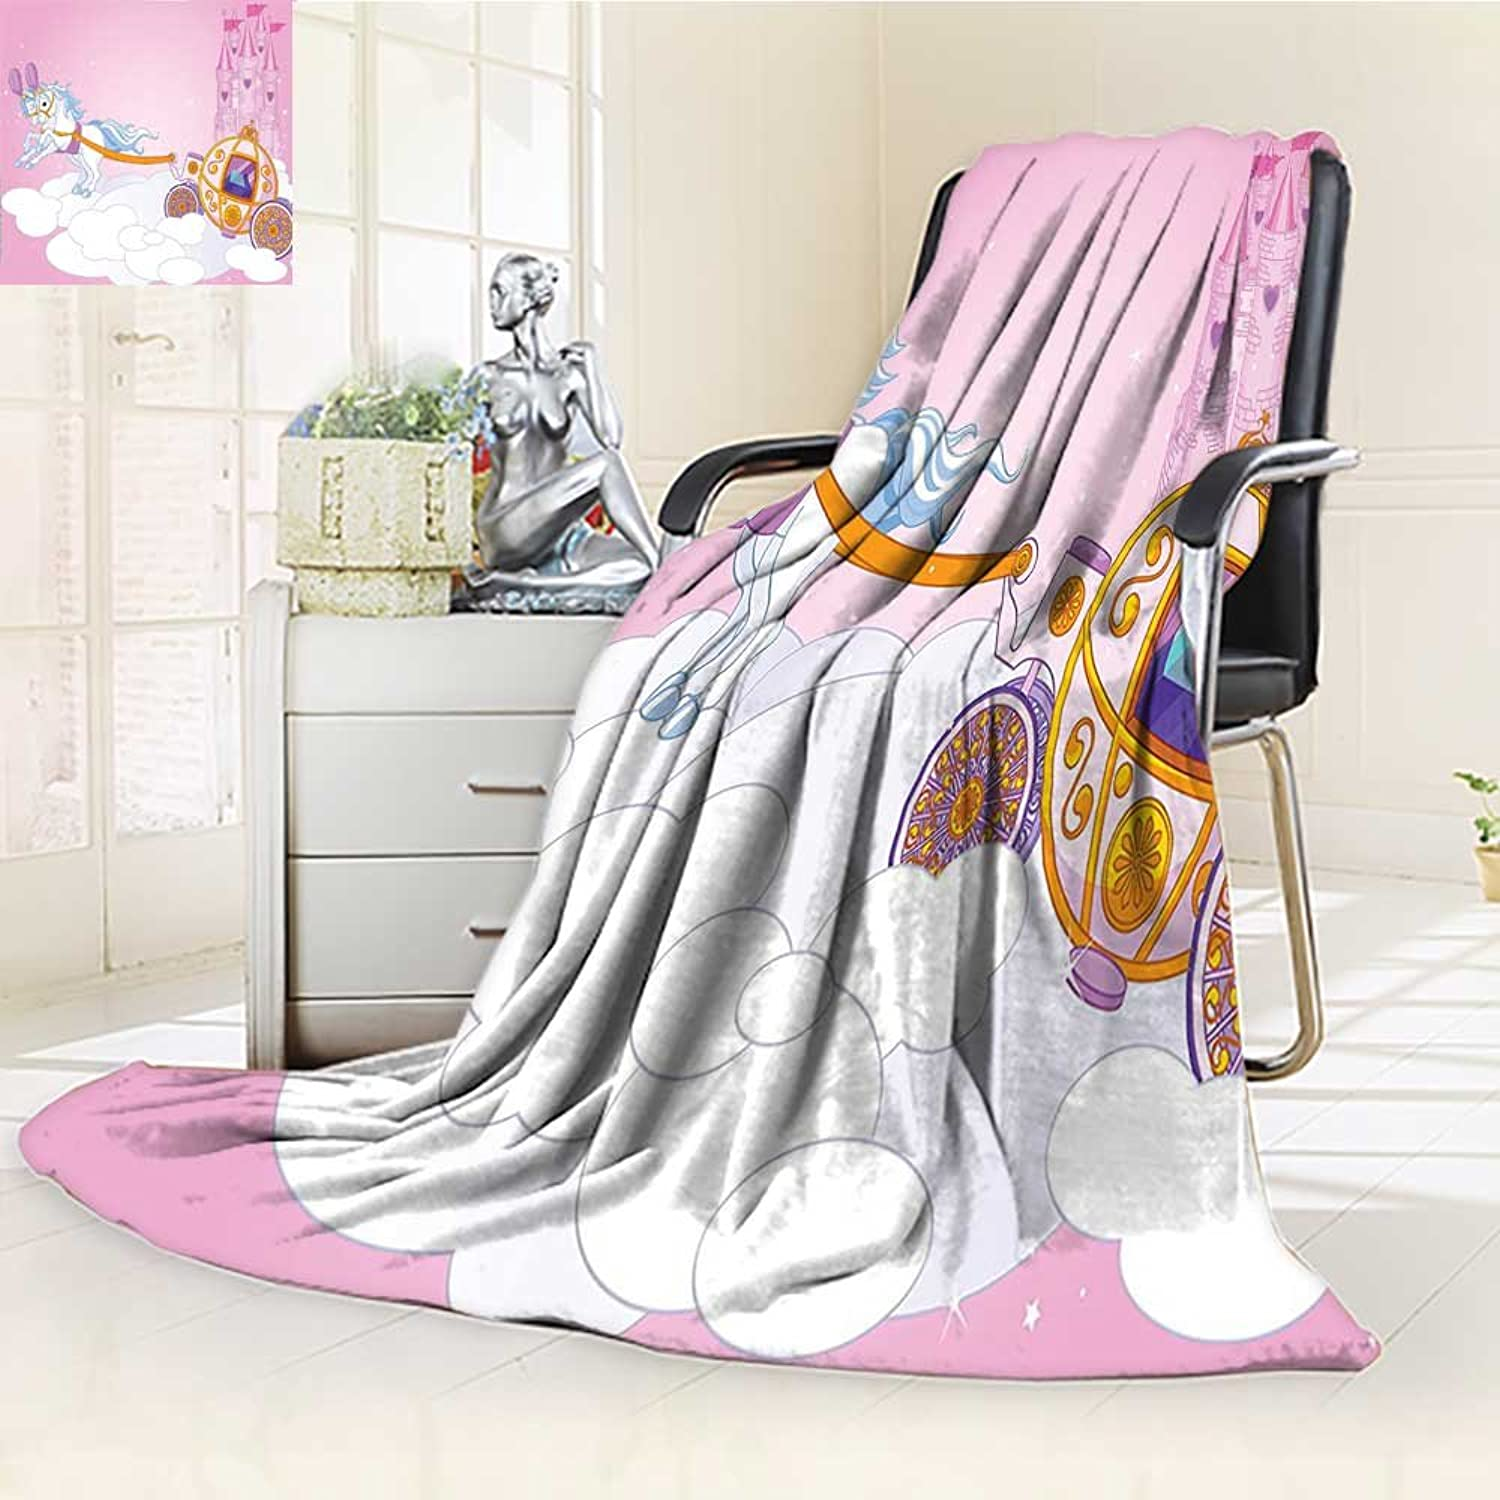 YOYI-HOME Lightweight Duplex Printed Blanket Teen Girls of a Fairy Tale Carriage in The Sky Kingdom Tower Clouds Image Pink White orange Digital Printing Blanket  W39.5 x H59